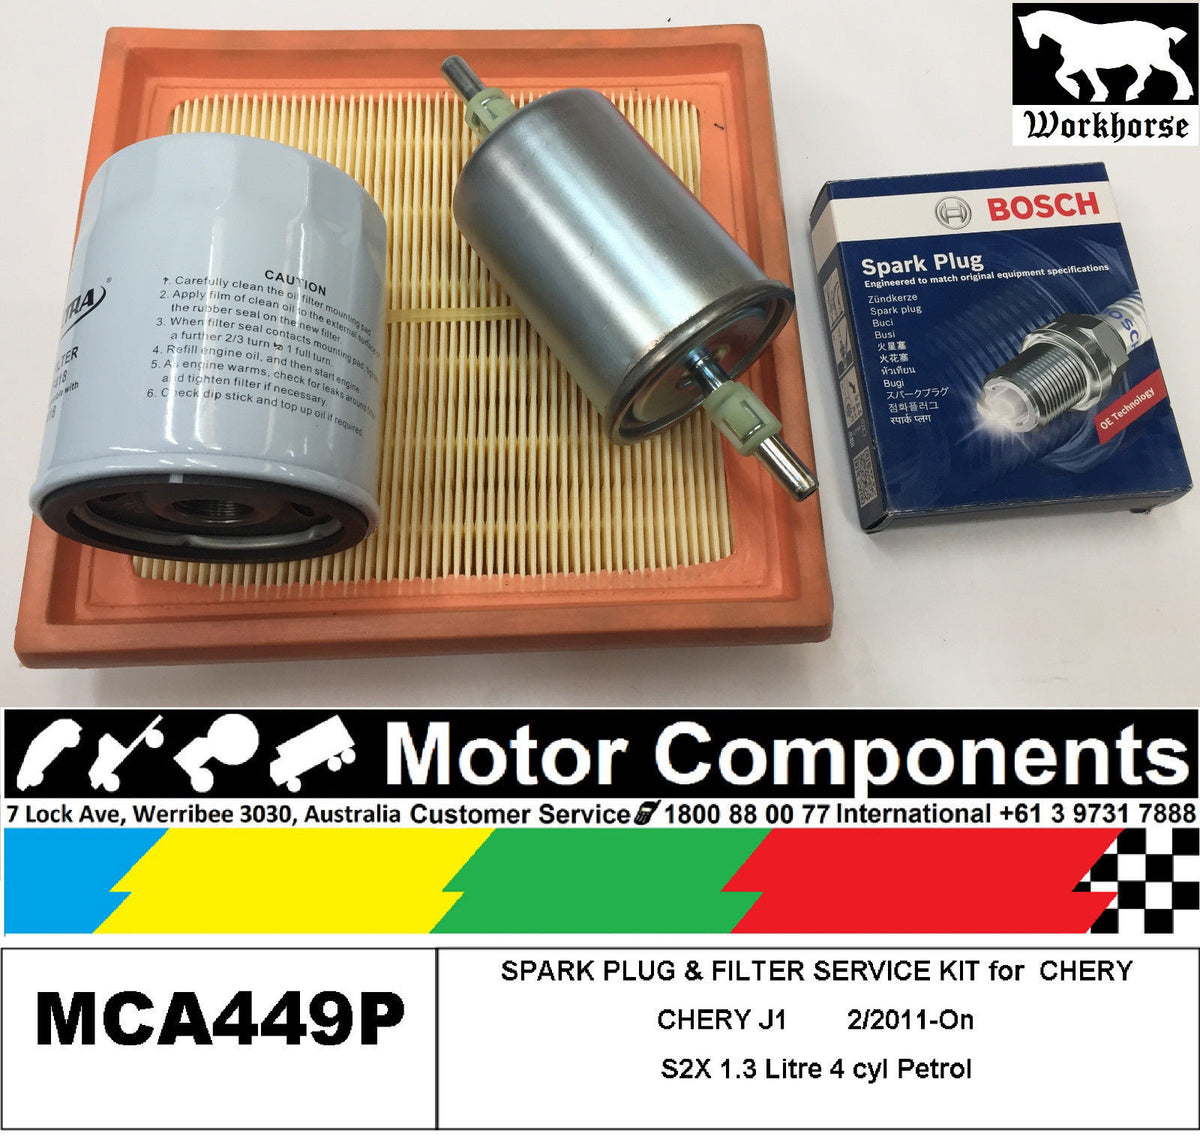 Chery – Motor Components